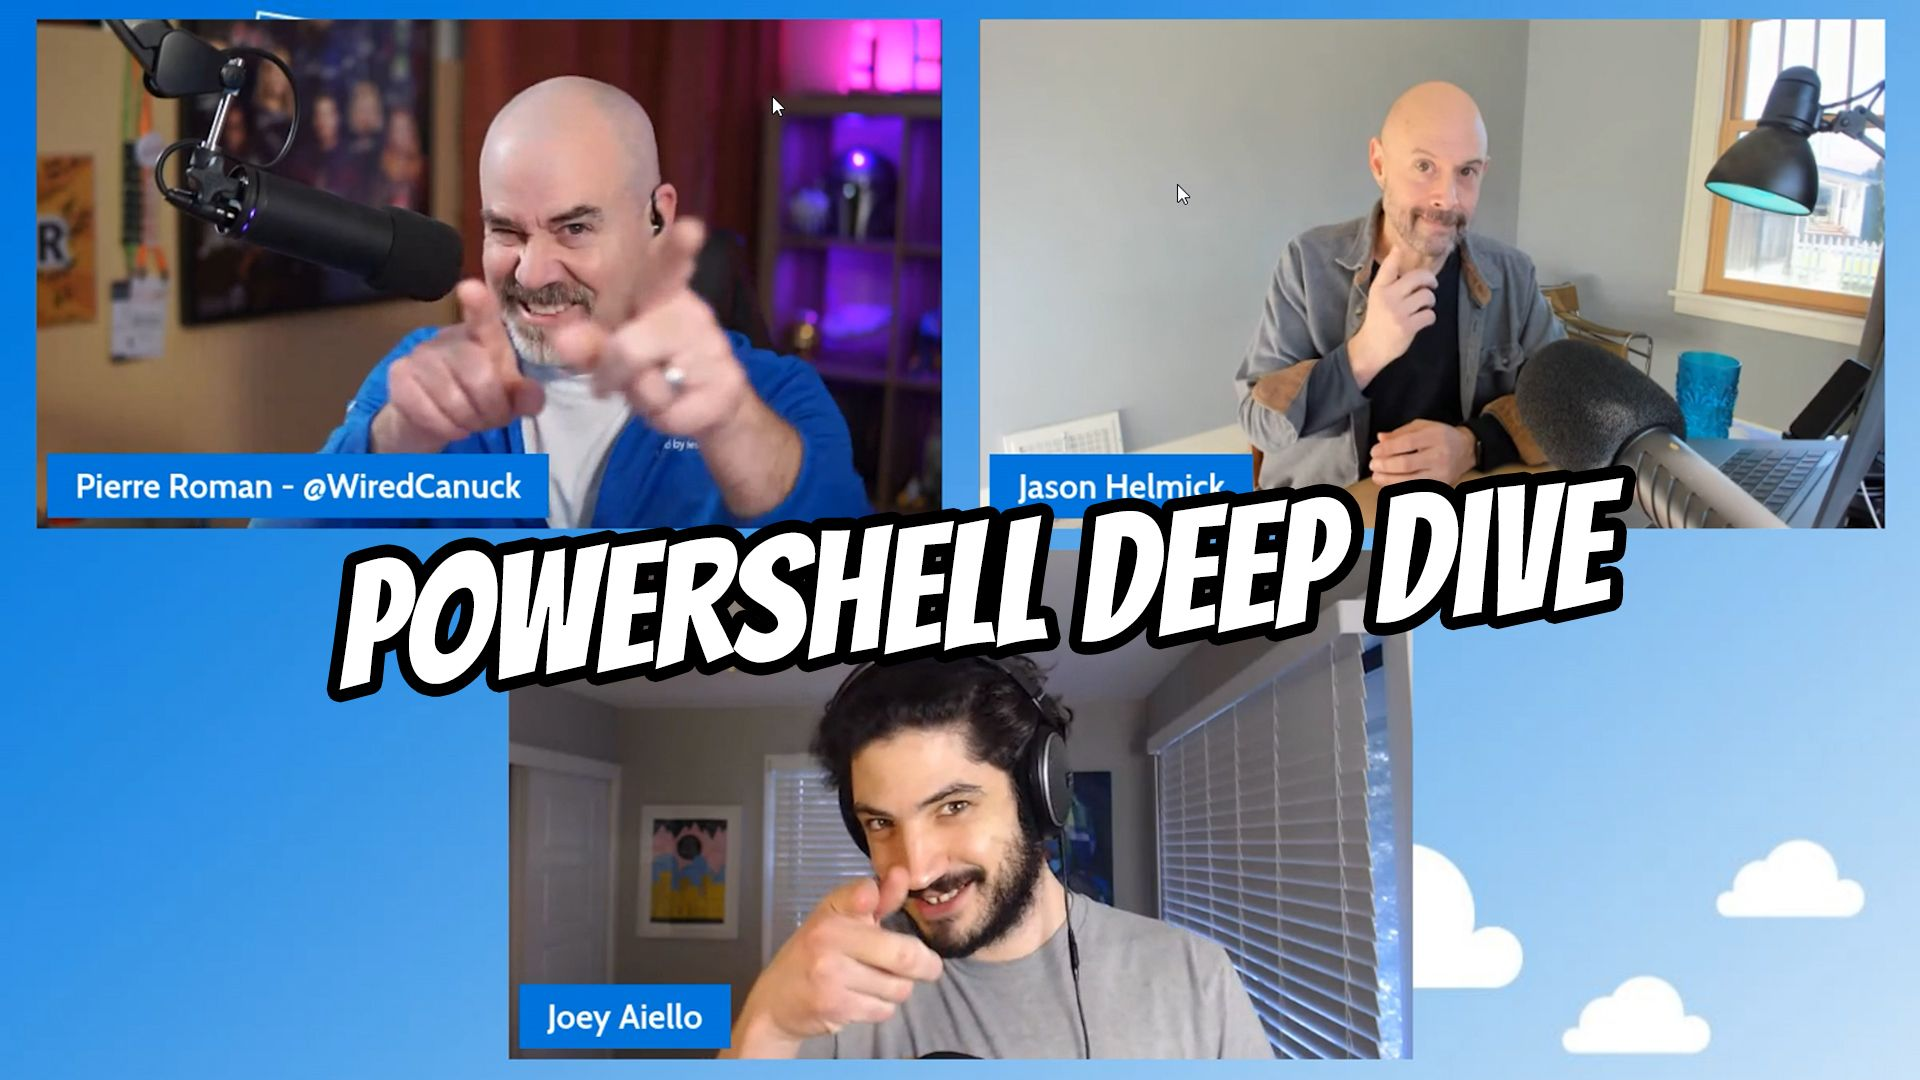 OPS117: PowerShell Deep dive